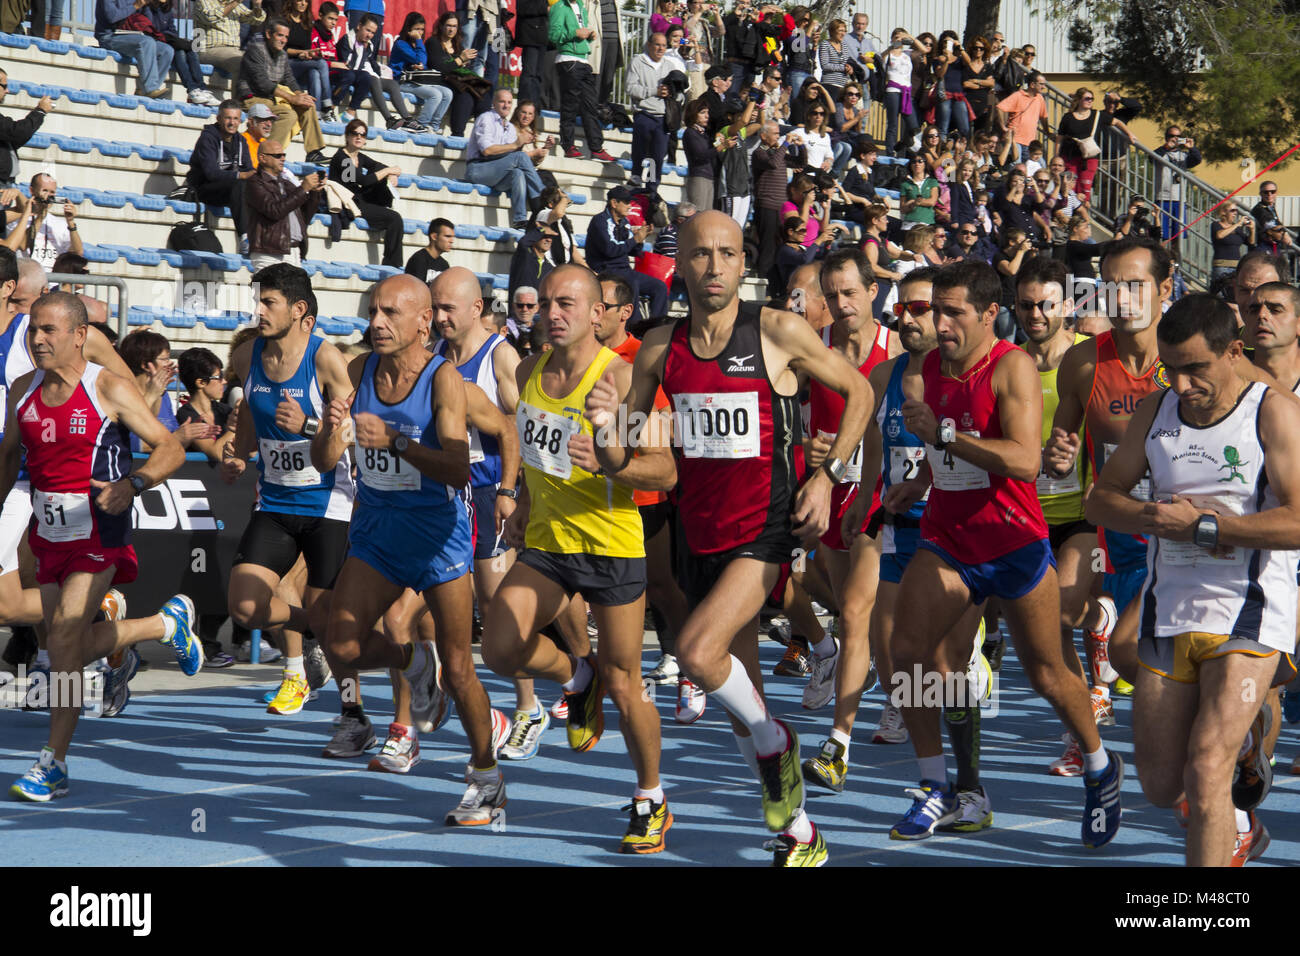 Marathon runners in the race - Stock Image